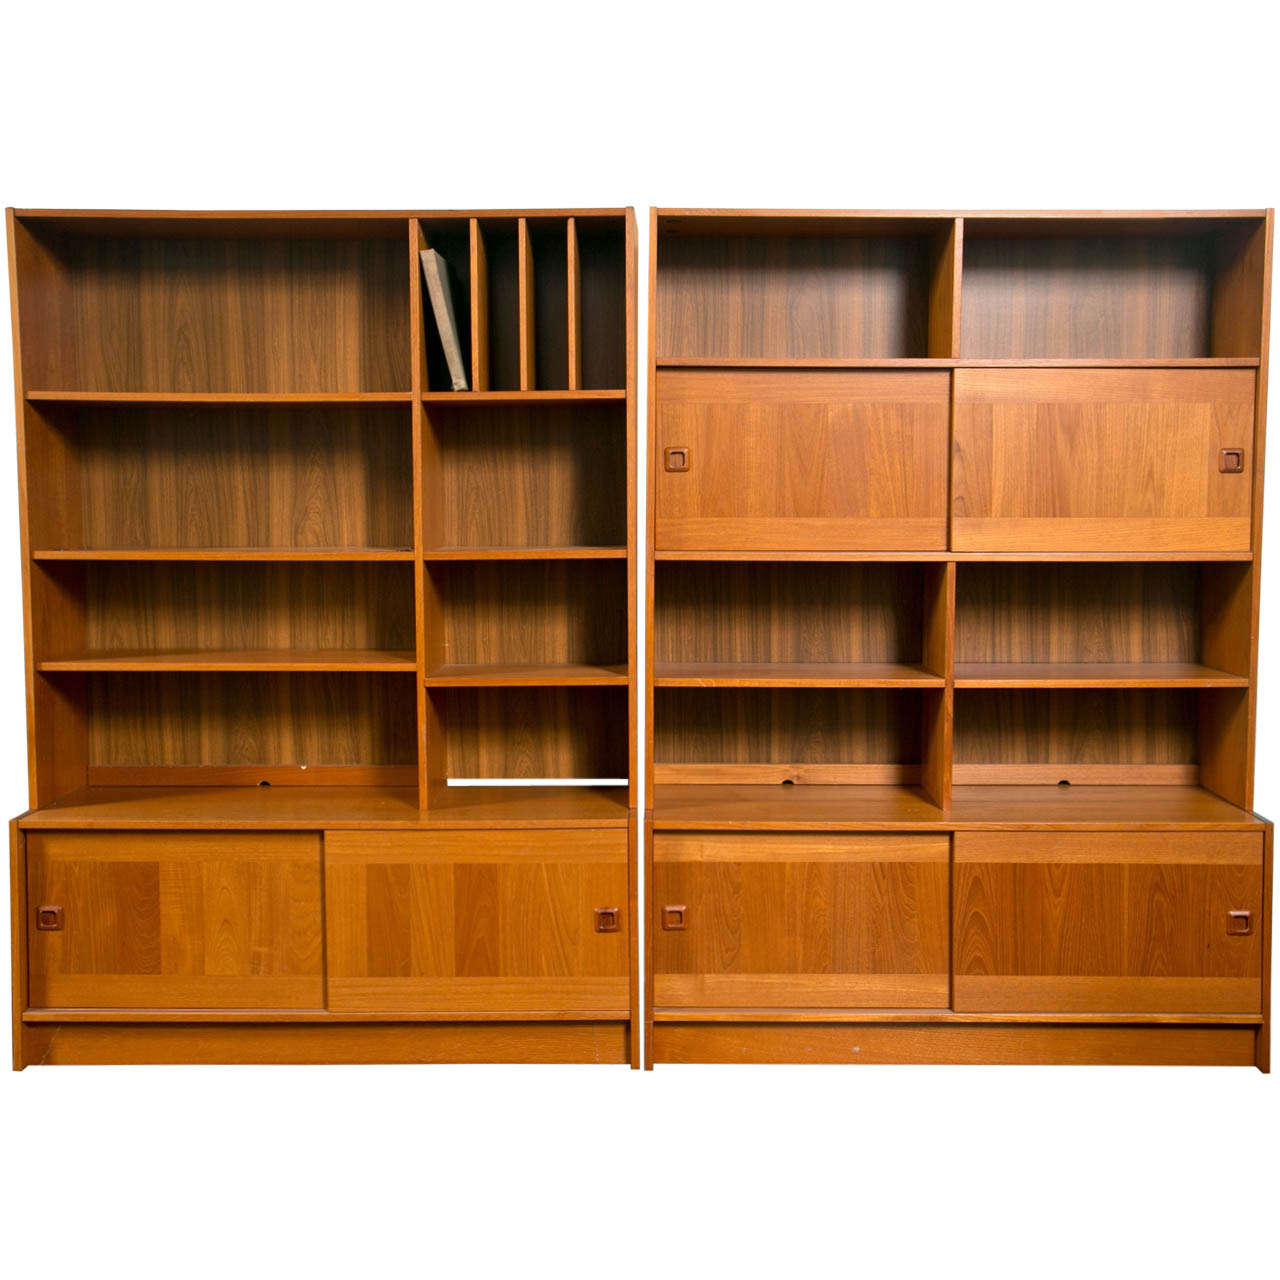 Awesome Mid Century Danish Modern Teak Wall Units By Domino Mobler 1